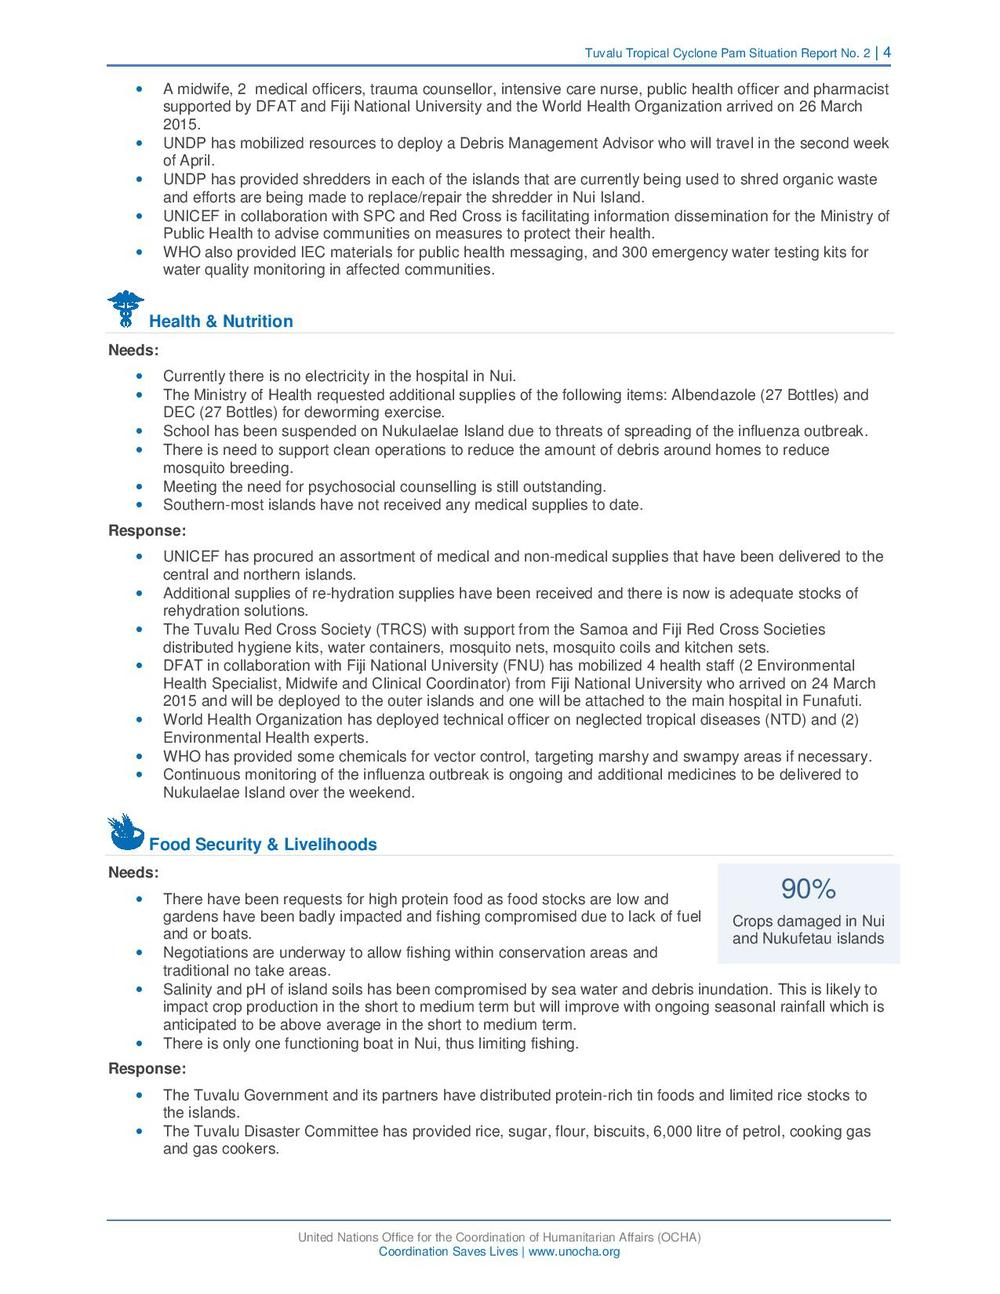 reliefweb.int_sites_reliefweb.int_files_resources_Tuvalu Tropical Cyclone Pam Situation Report No. 2-page-004.jpg